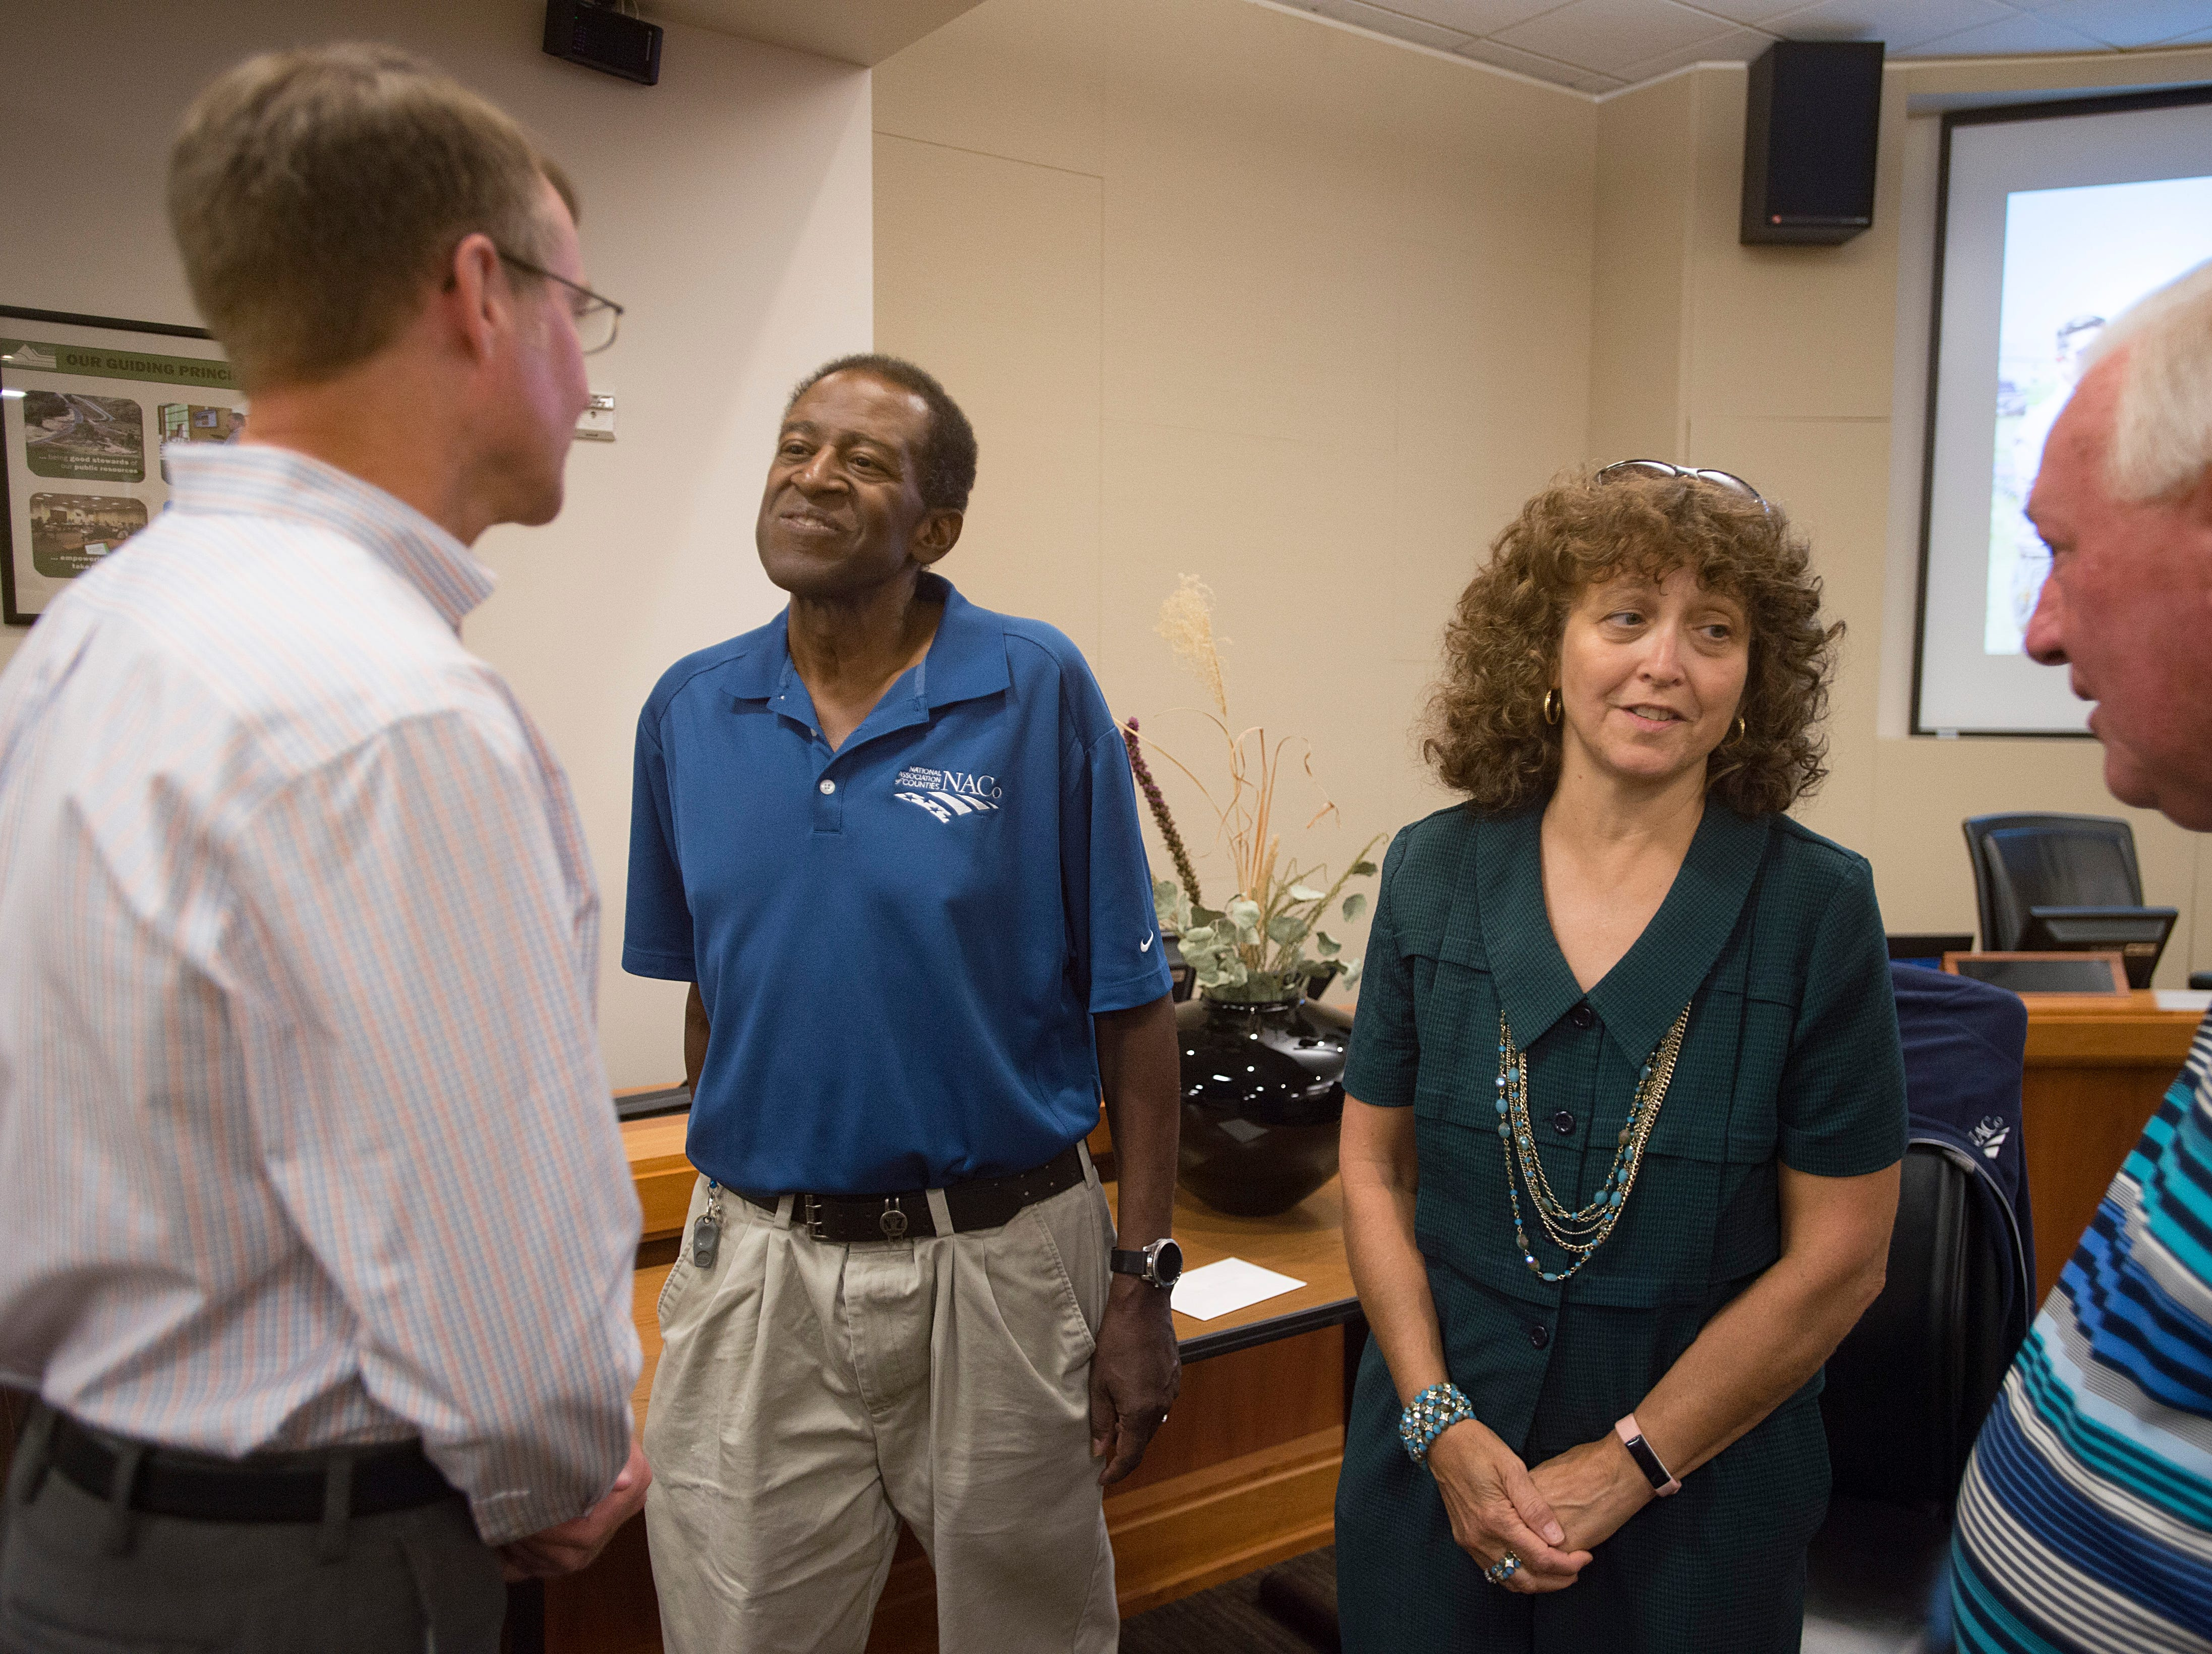 County Commissioner Lew Gaiter III and his wife Jeannette visit with friends and colleagues at a gathering to celebrate his life at the Larimer County Courthouse on Wednesday, August 15, 2018. Gaiter III was given six to 12 weeks to live after the cancer he has had for nearly a decade began to take its toll earlier this month.